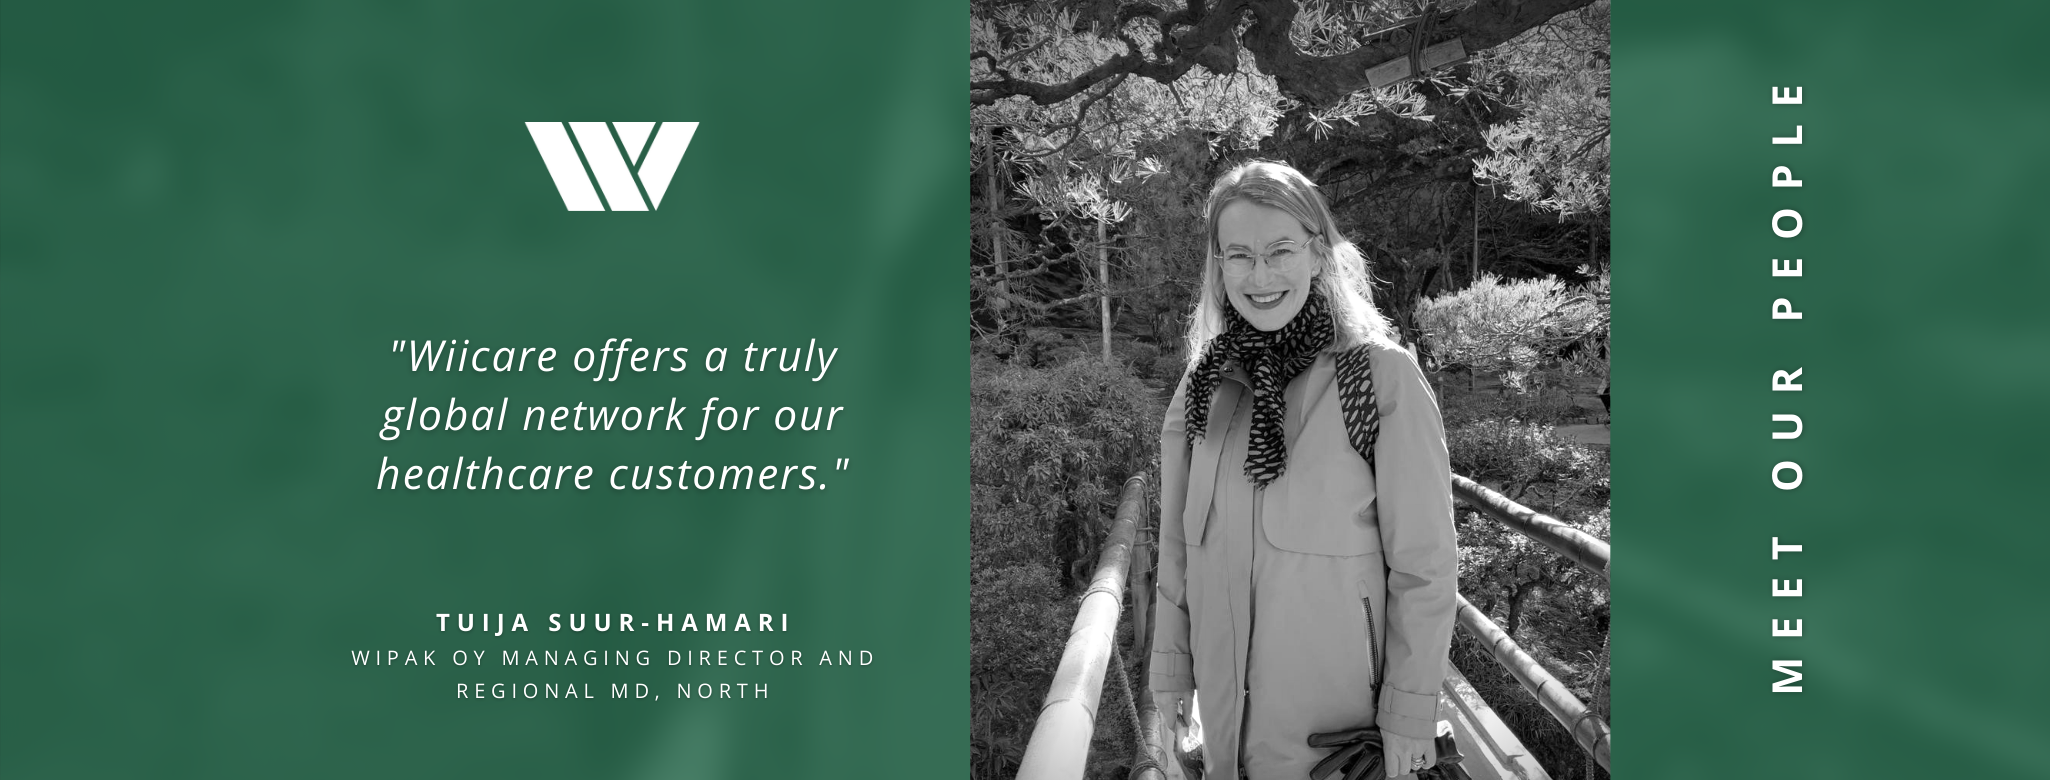 Meet our wipak colleague - Tuija Suur-Hamari